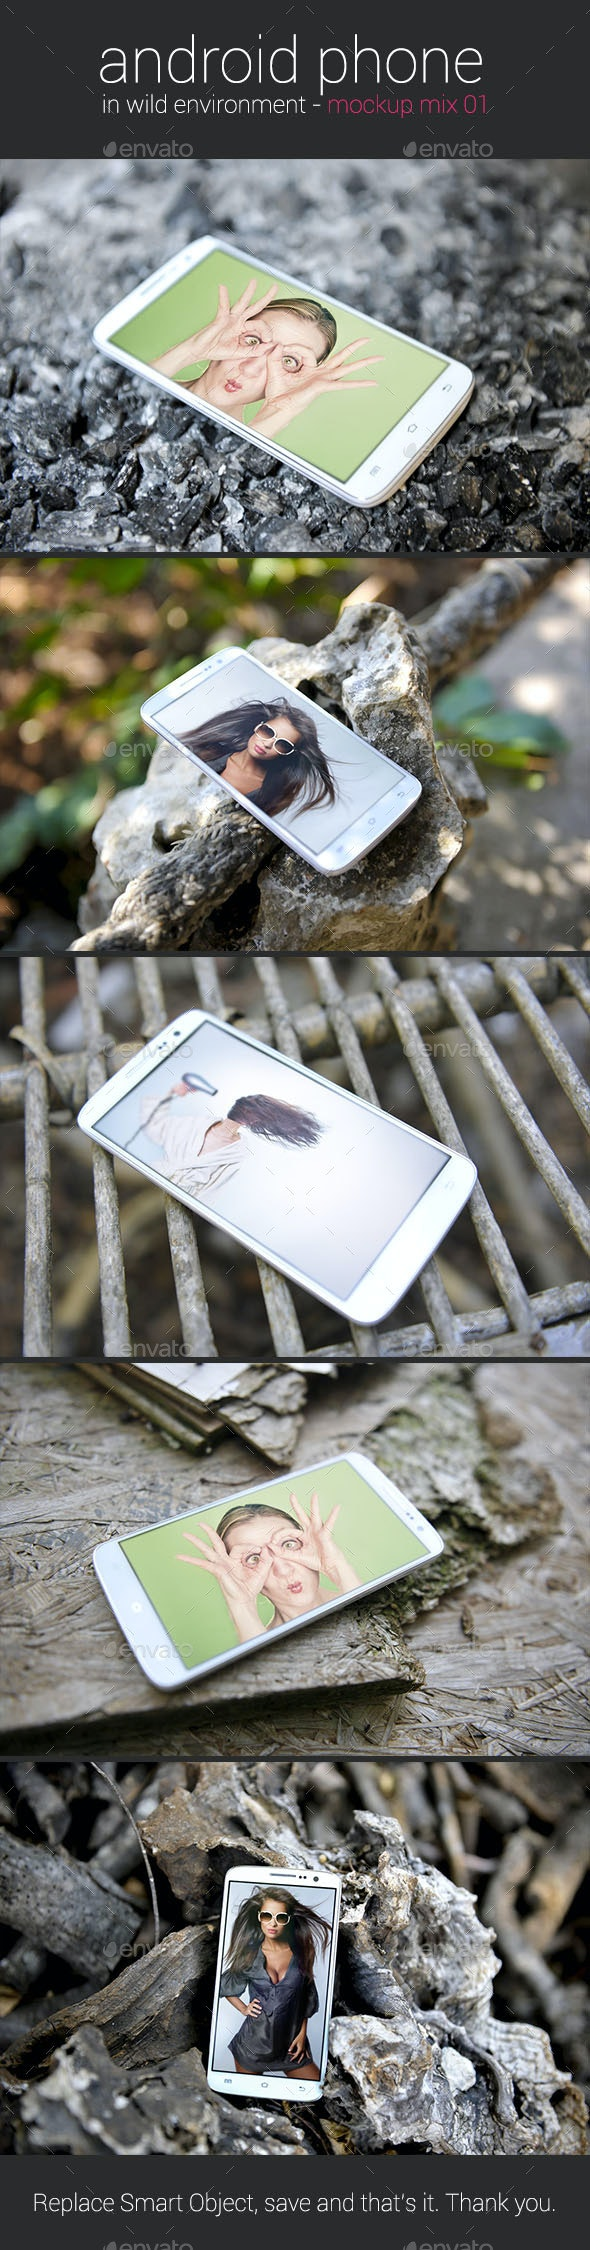 Android Phone in Wild Environment - Mockup - Mobile Displays